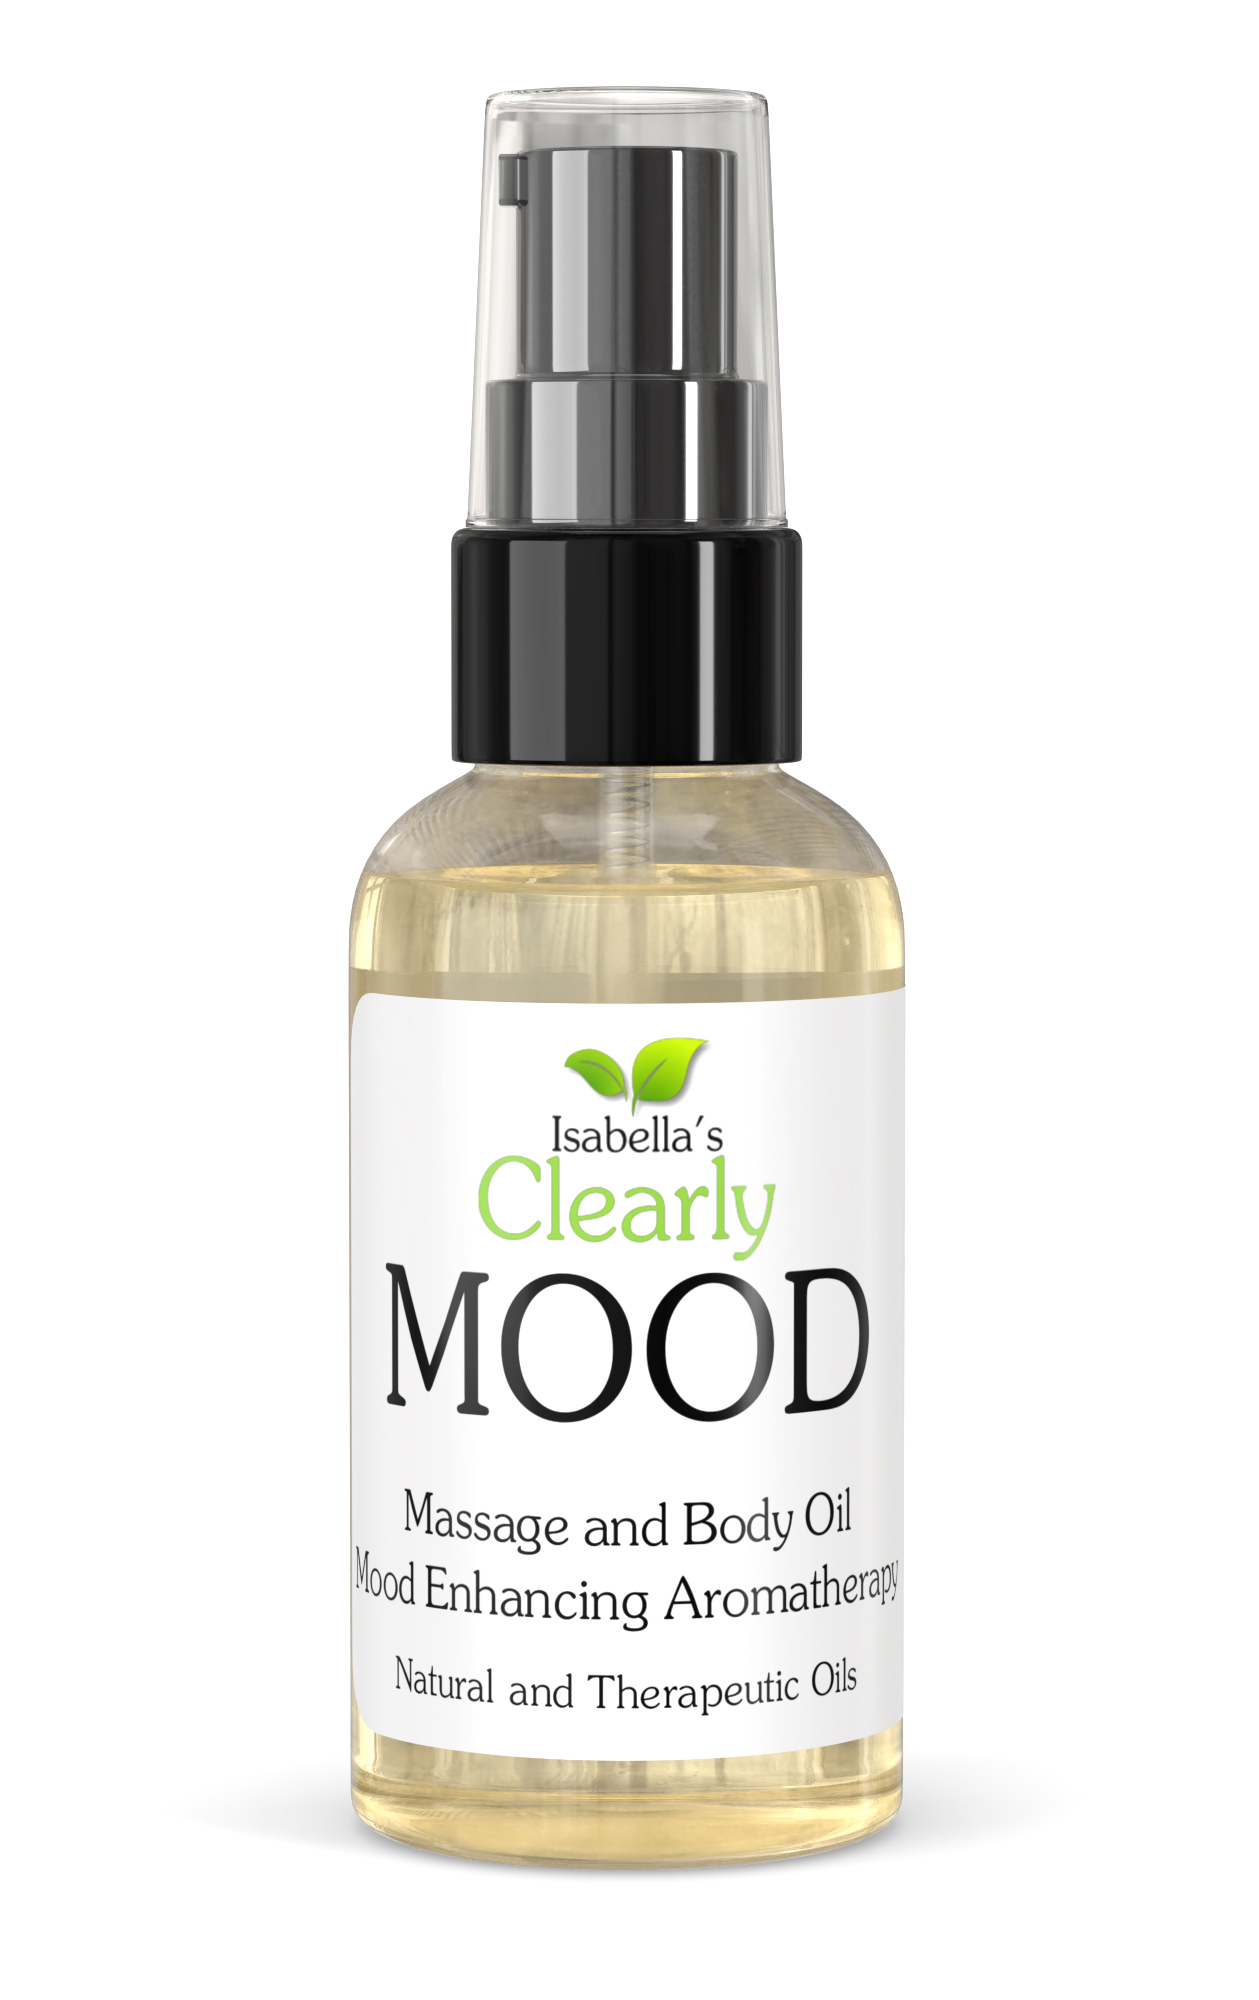 Clearly MOOD, Aromatherapy Massage and Body Oil for Enhanced Mood